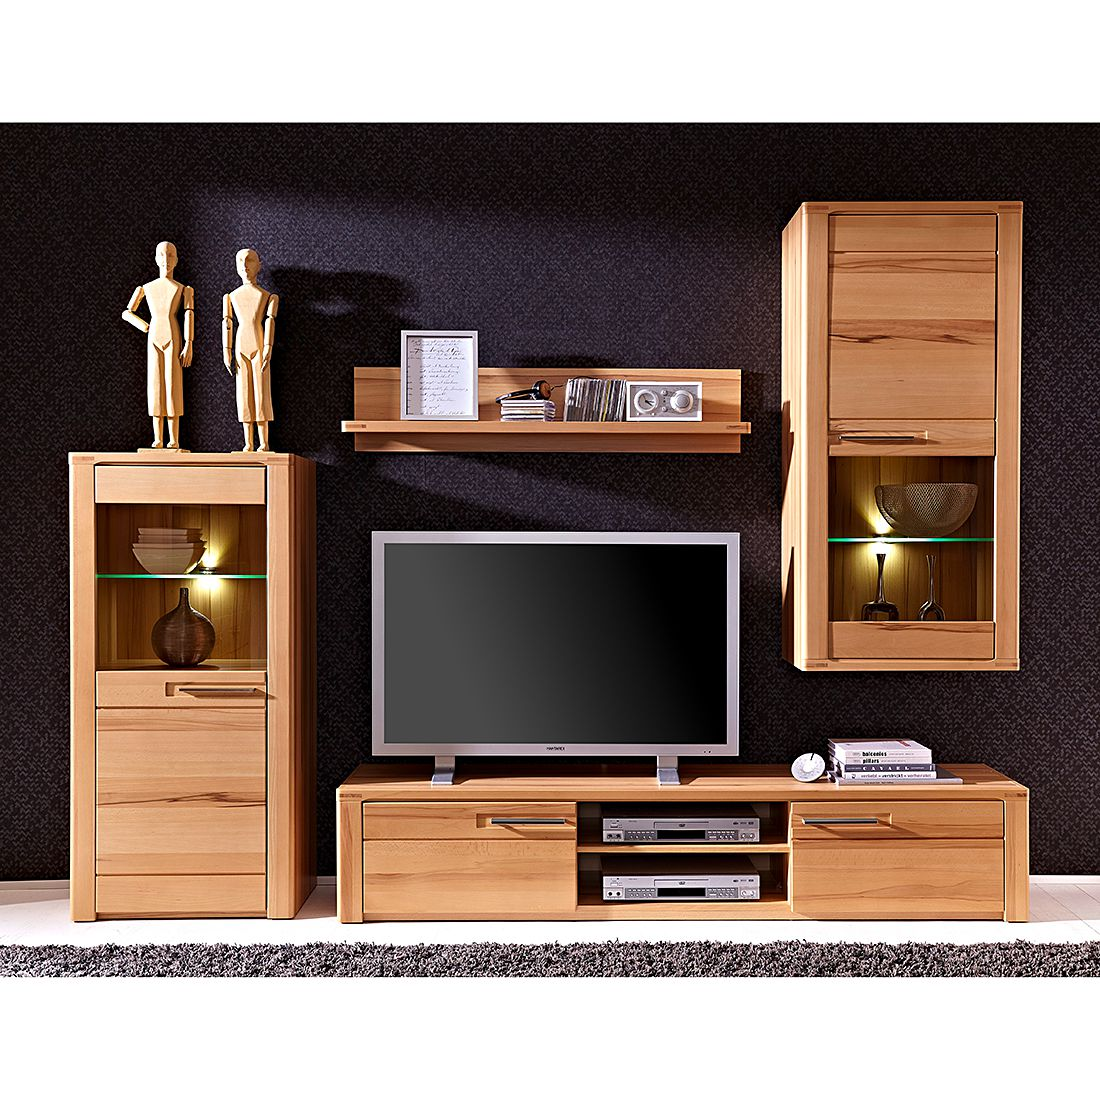 wohnwand naturestar ii 4 teilig kernbuche teilmassiv. Black Bedroom Furniture Sets. Home Design Ideas